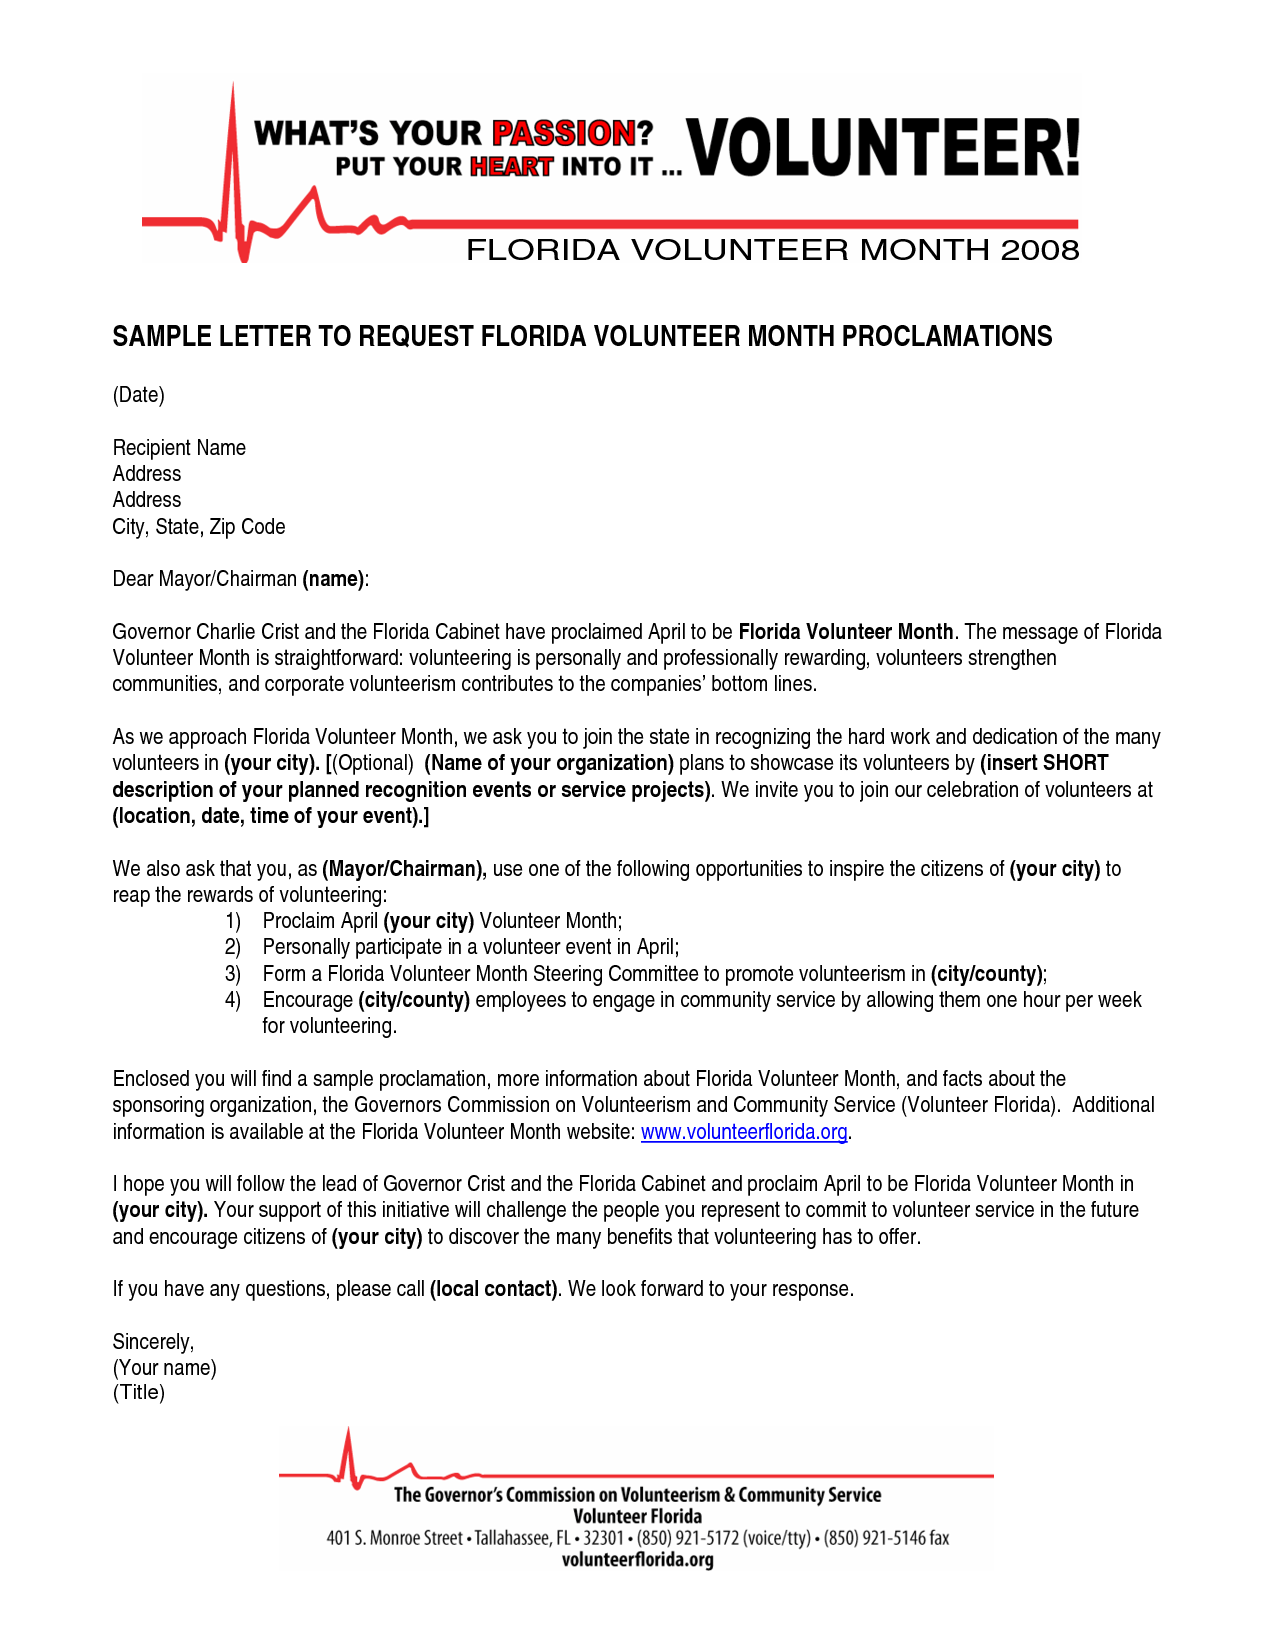 Volunteer Letter Template Desktopvolunteer Letter Template Application  Letter Sample